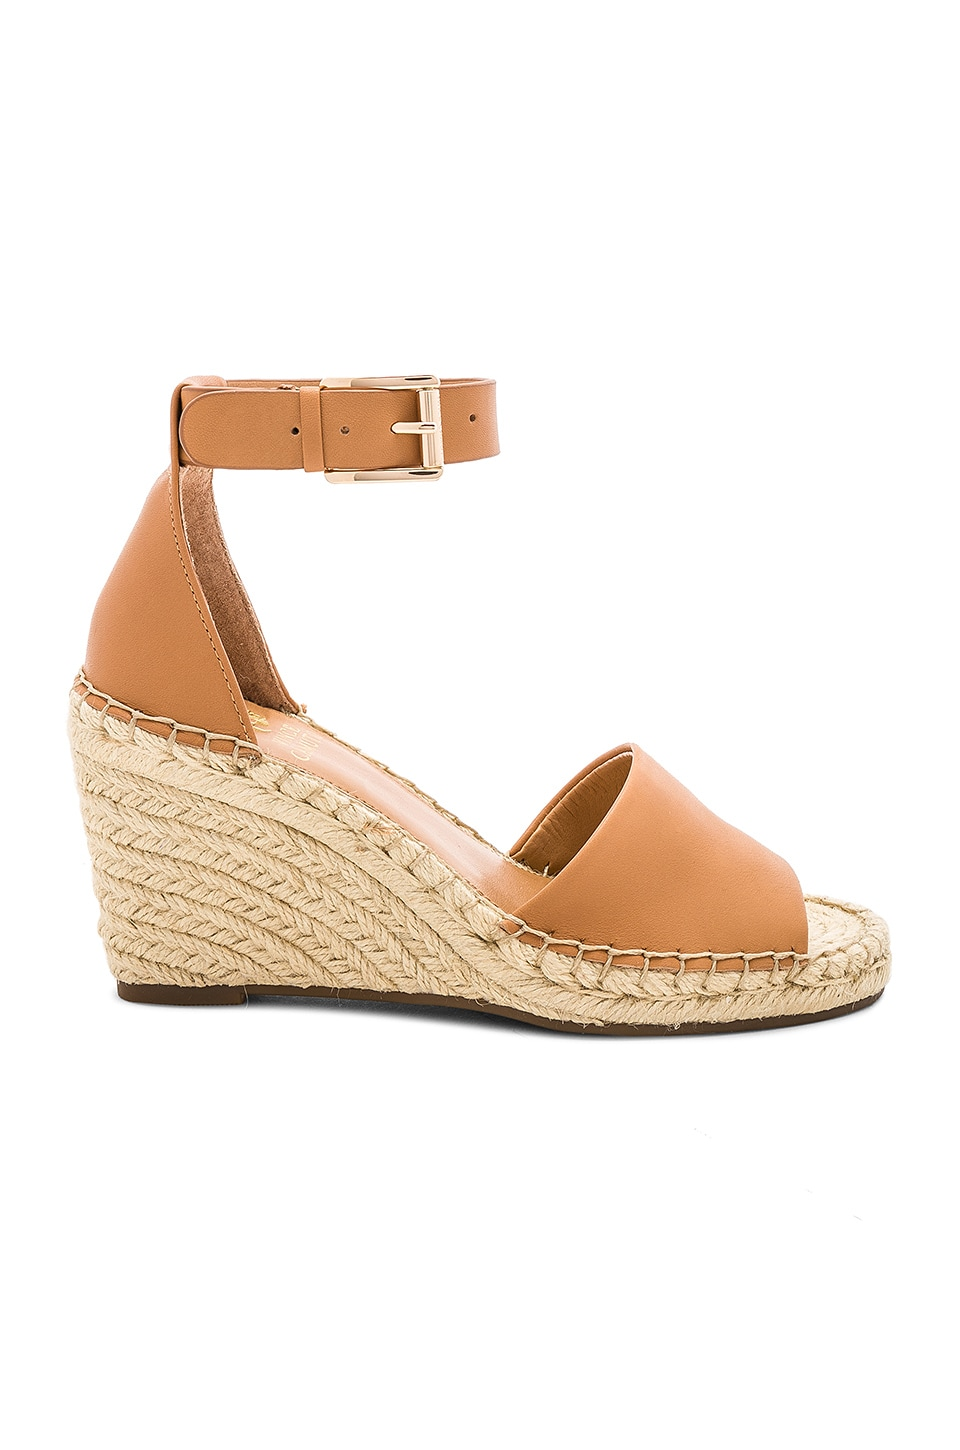 Vince Camuto Leera Wedge in Tan